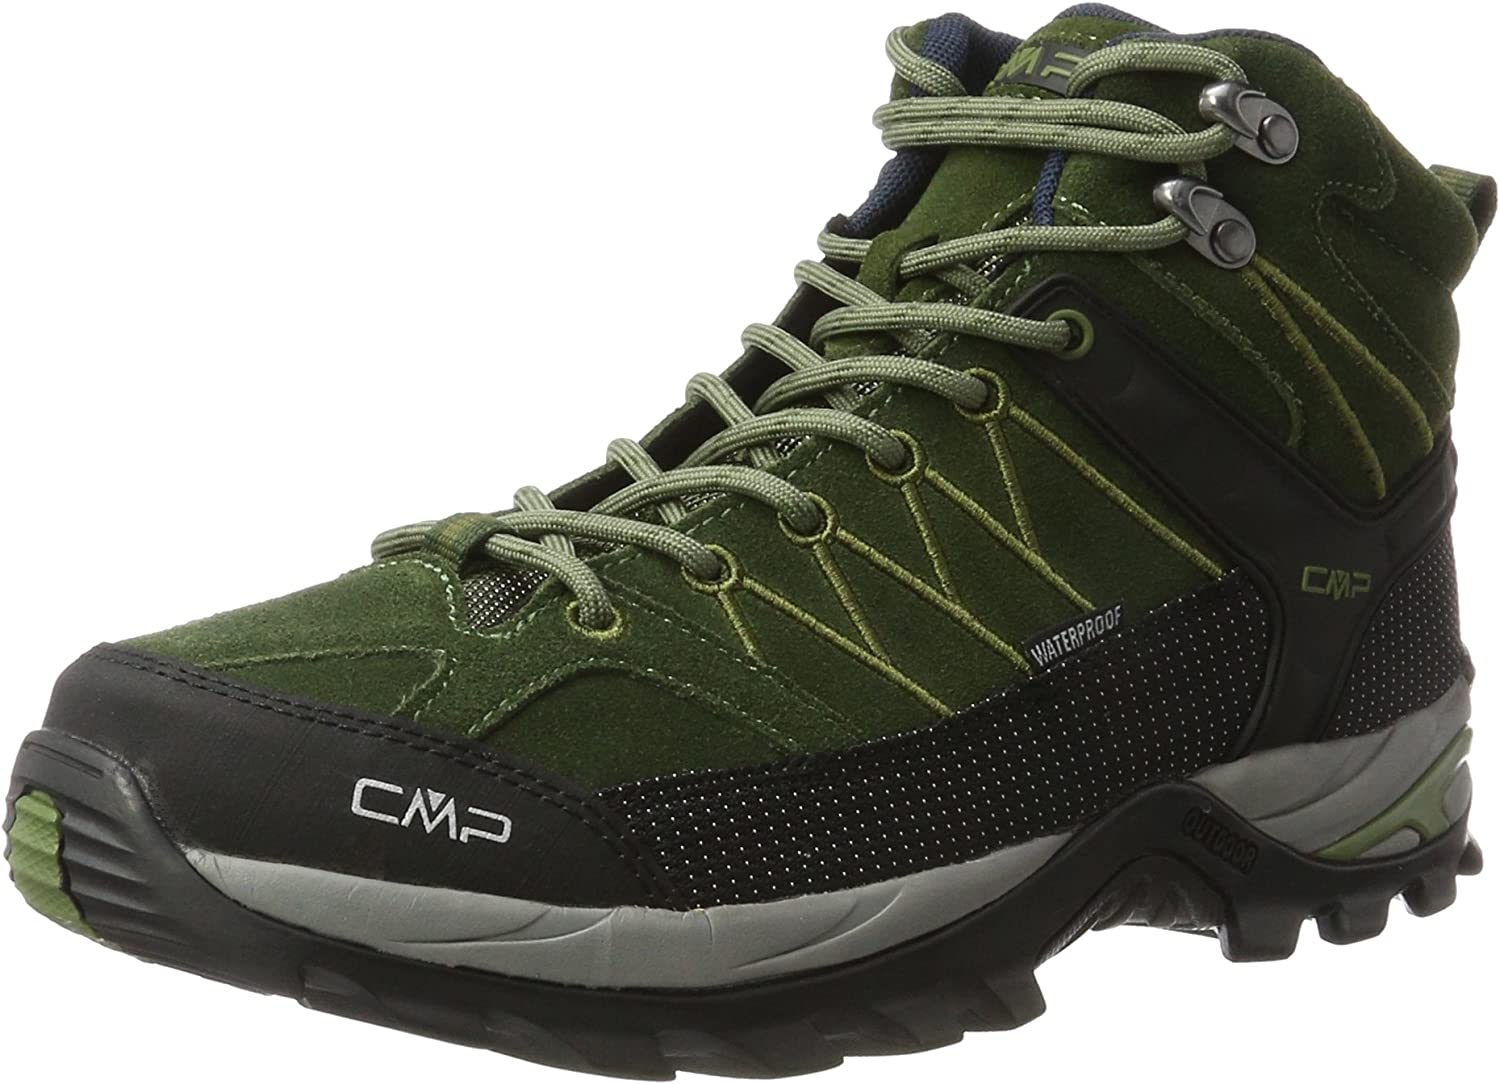 CMP Campagnolo Men's's Rigel Mid Wp High Rise Hiking shoes